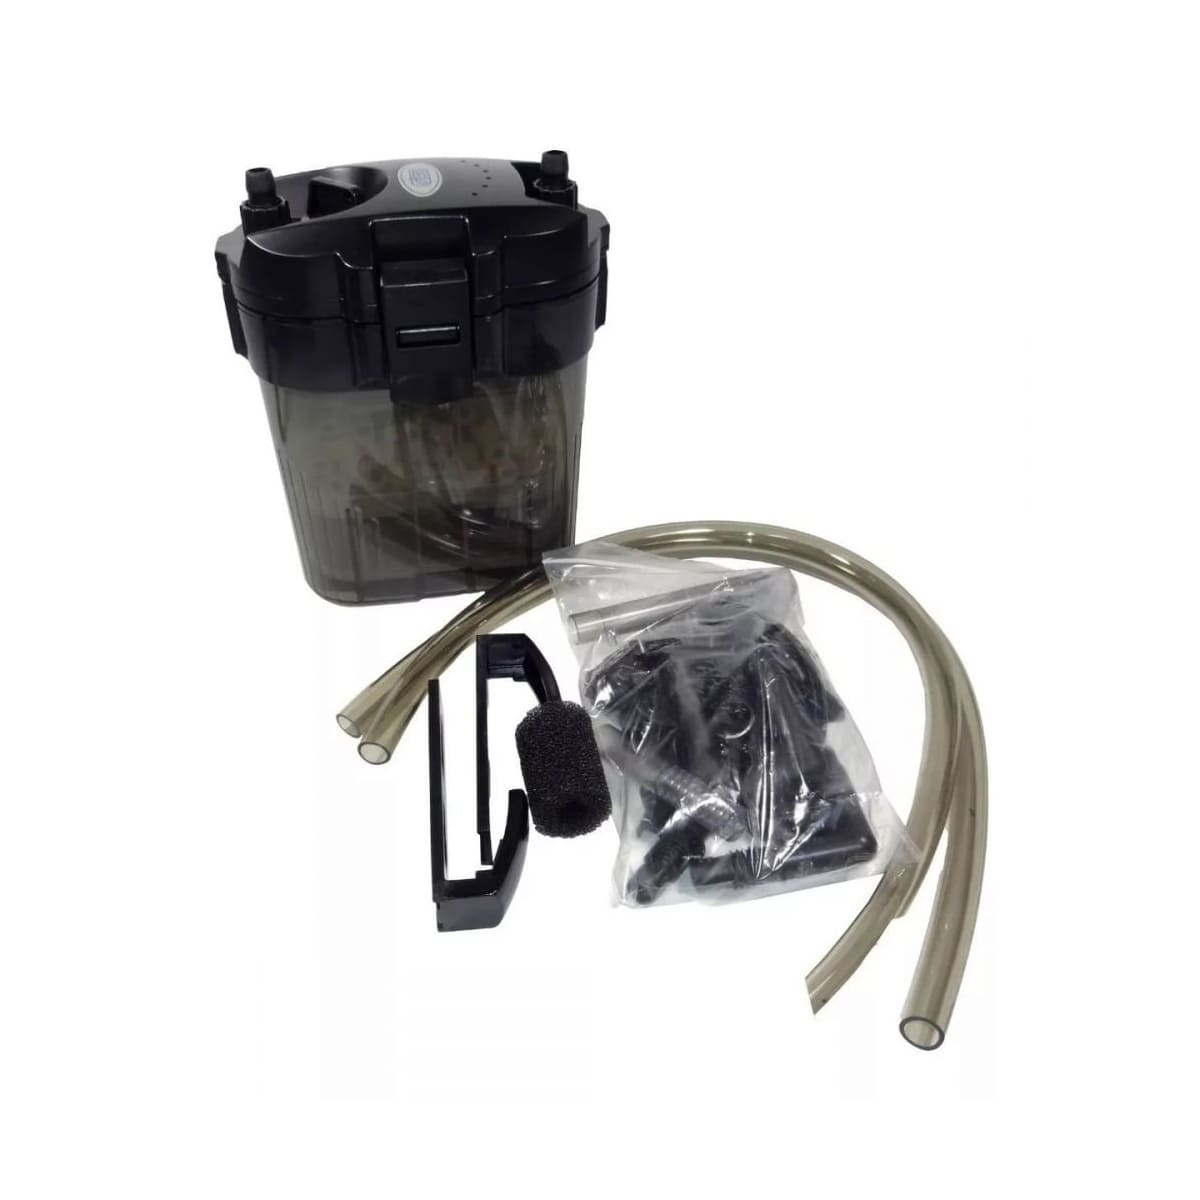 Filtro Externo Canister Ista Max Care - 360 L/h 110v